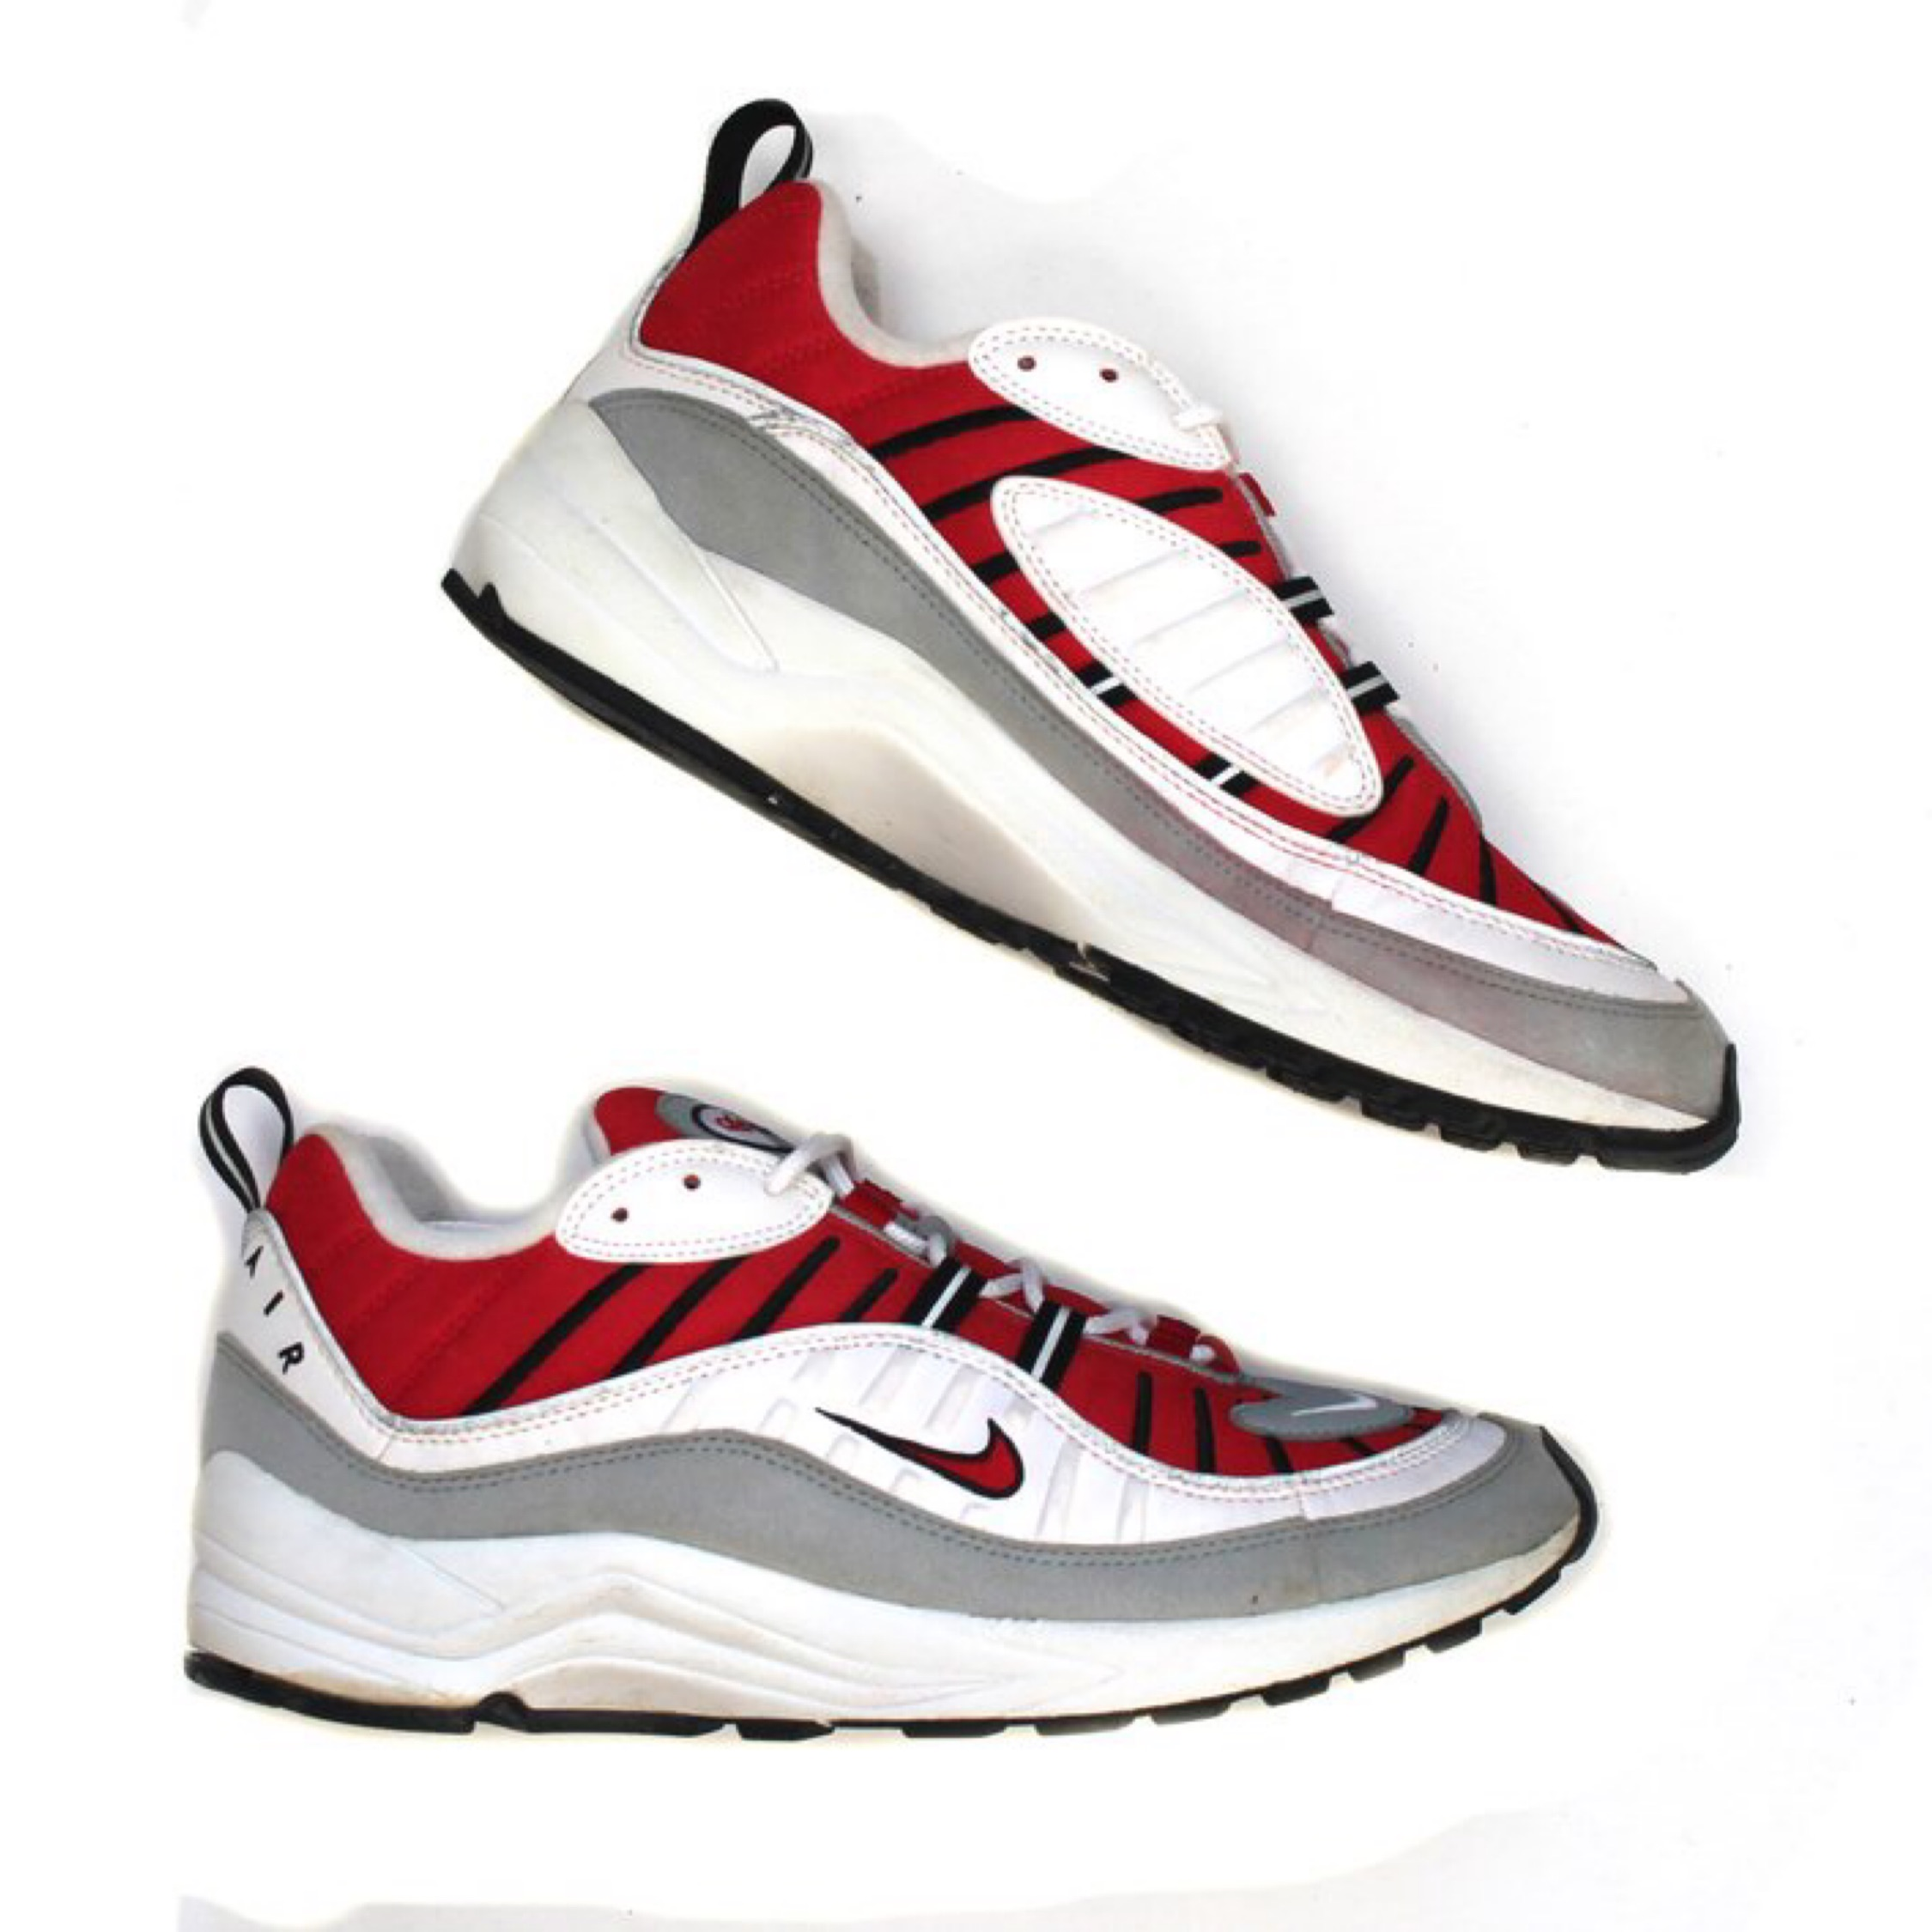 online retailer 23c78 2d670 Nike Air Max 98 Huarache Light Hybrid Uk9.5